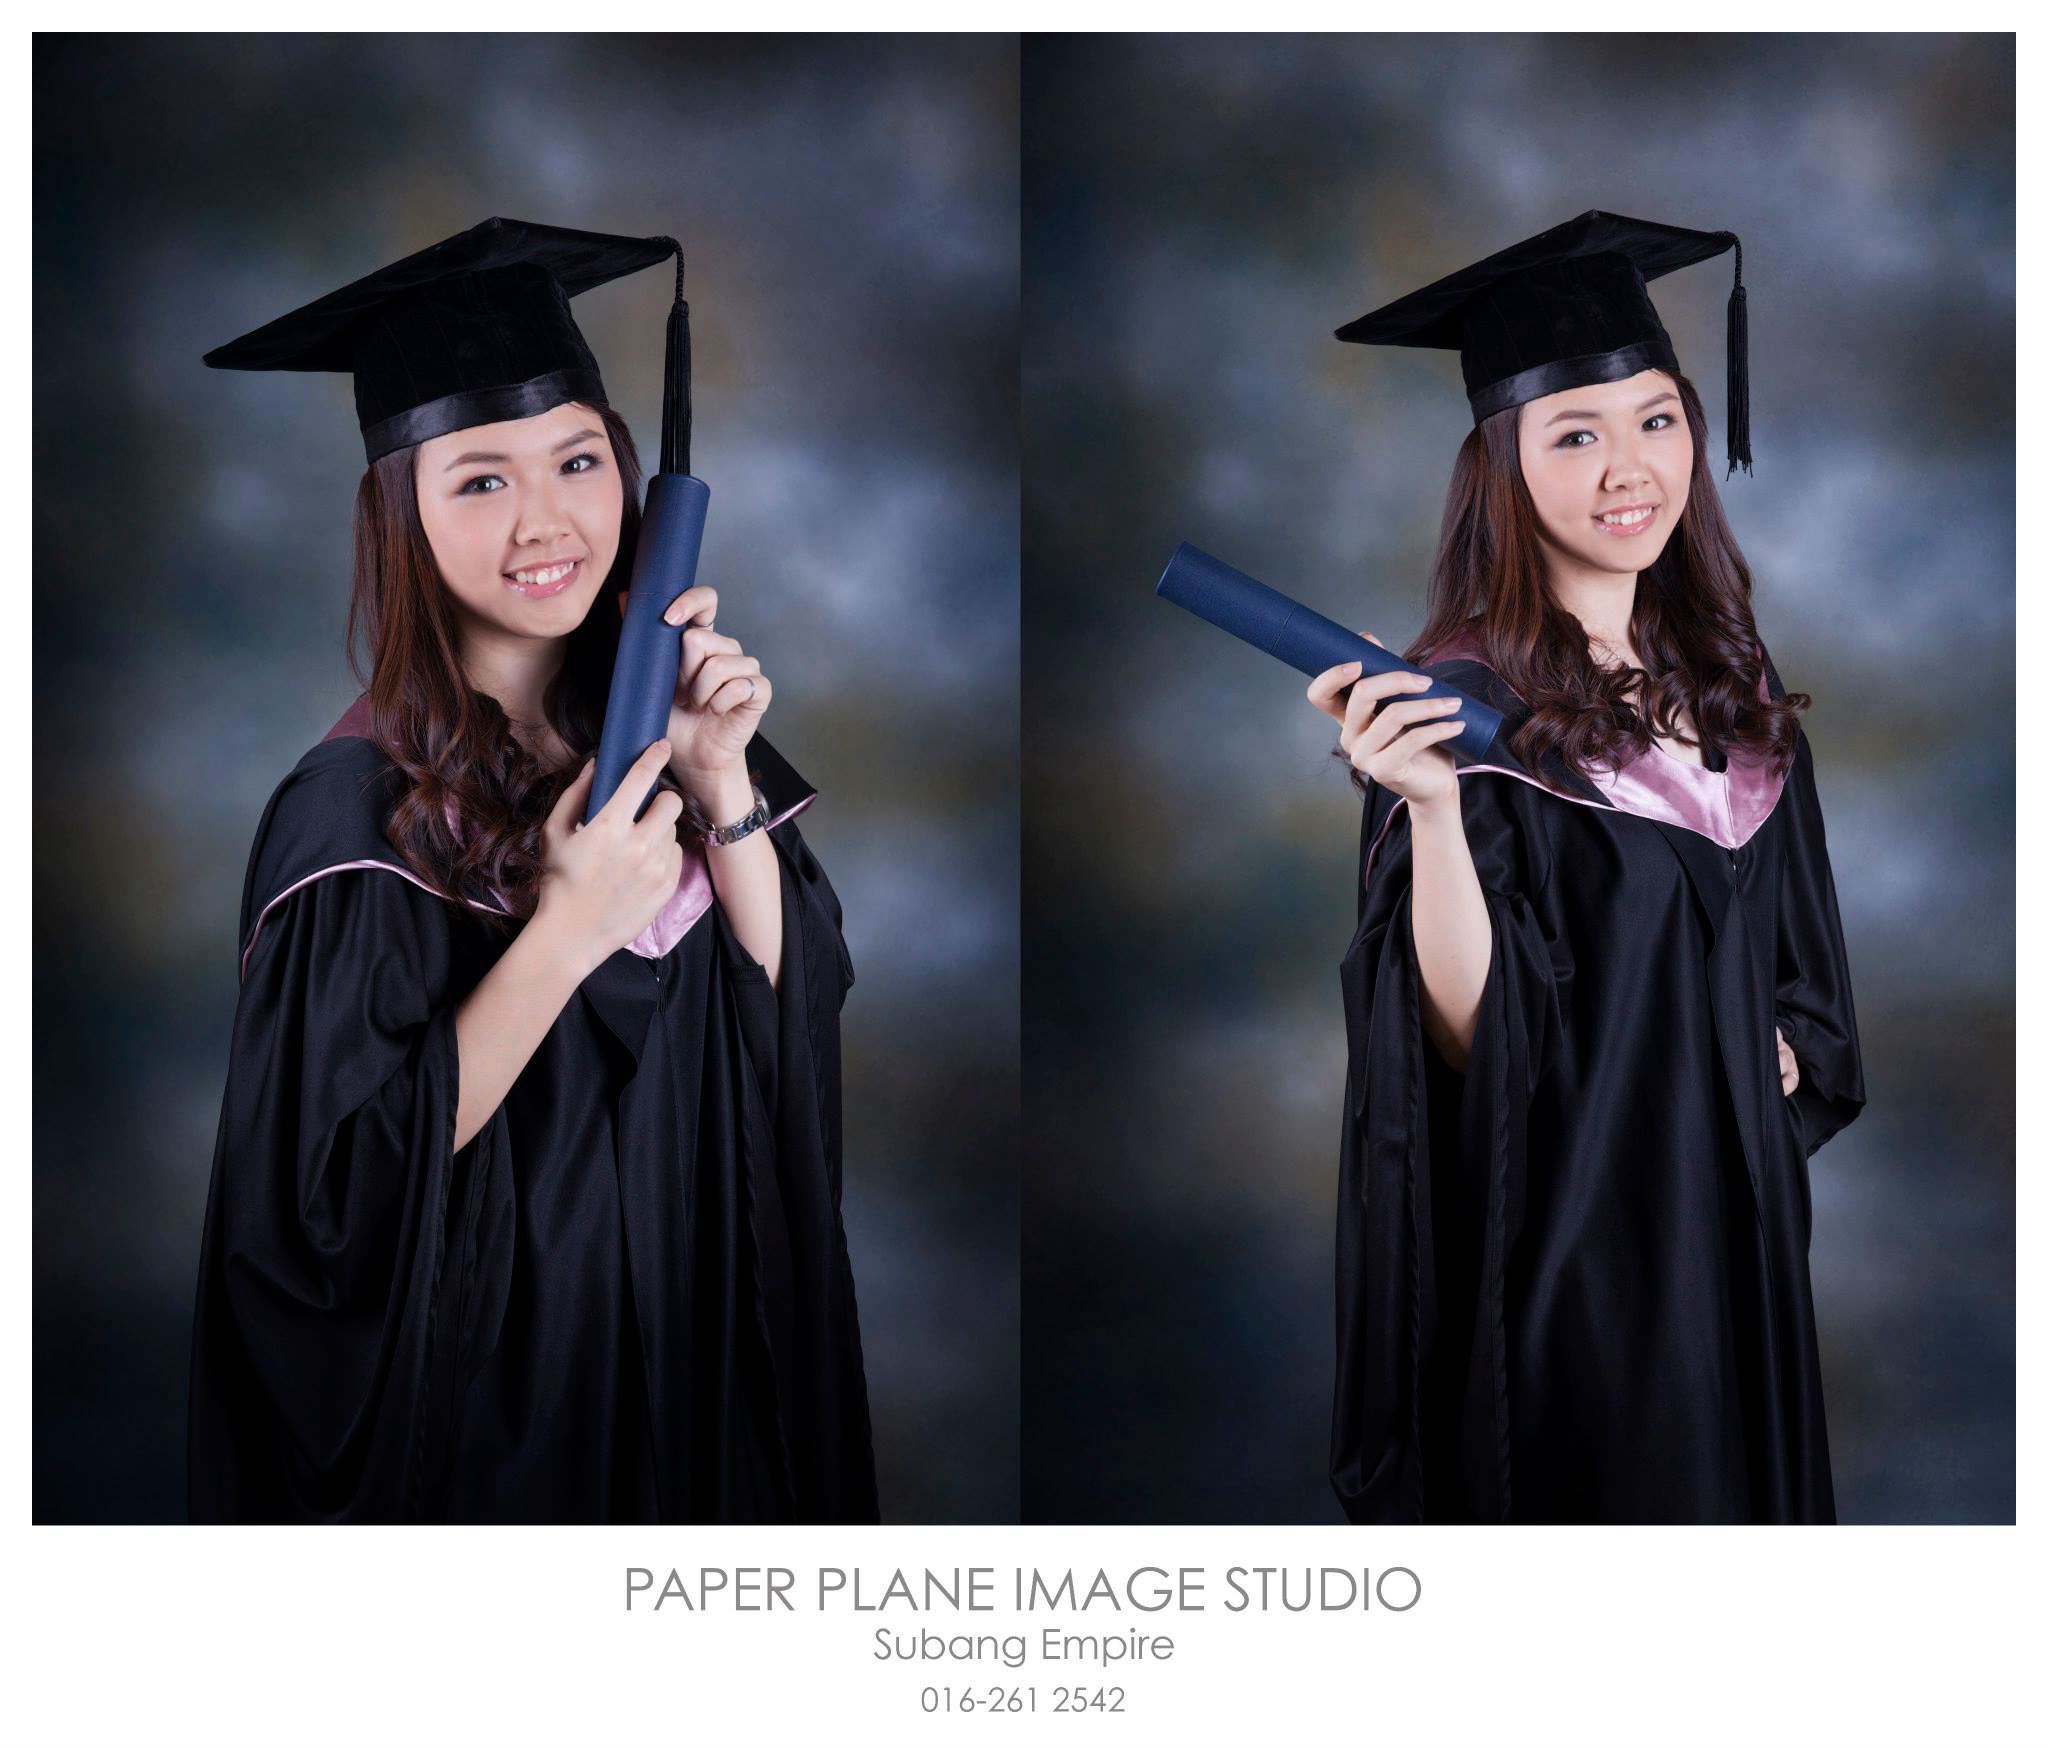 Graduation Photo Shooting, Graduation Video Shooting, Graduation Shooting, Graduation Studio Photography, Graduation Photographer Malaysia, Malaysia Graduation Malaysia, Malaysia Graduation Studio Photography